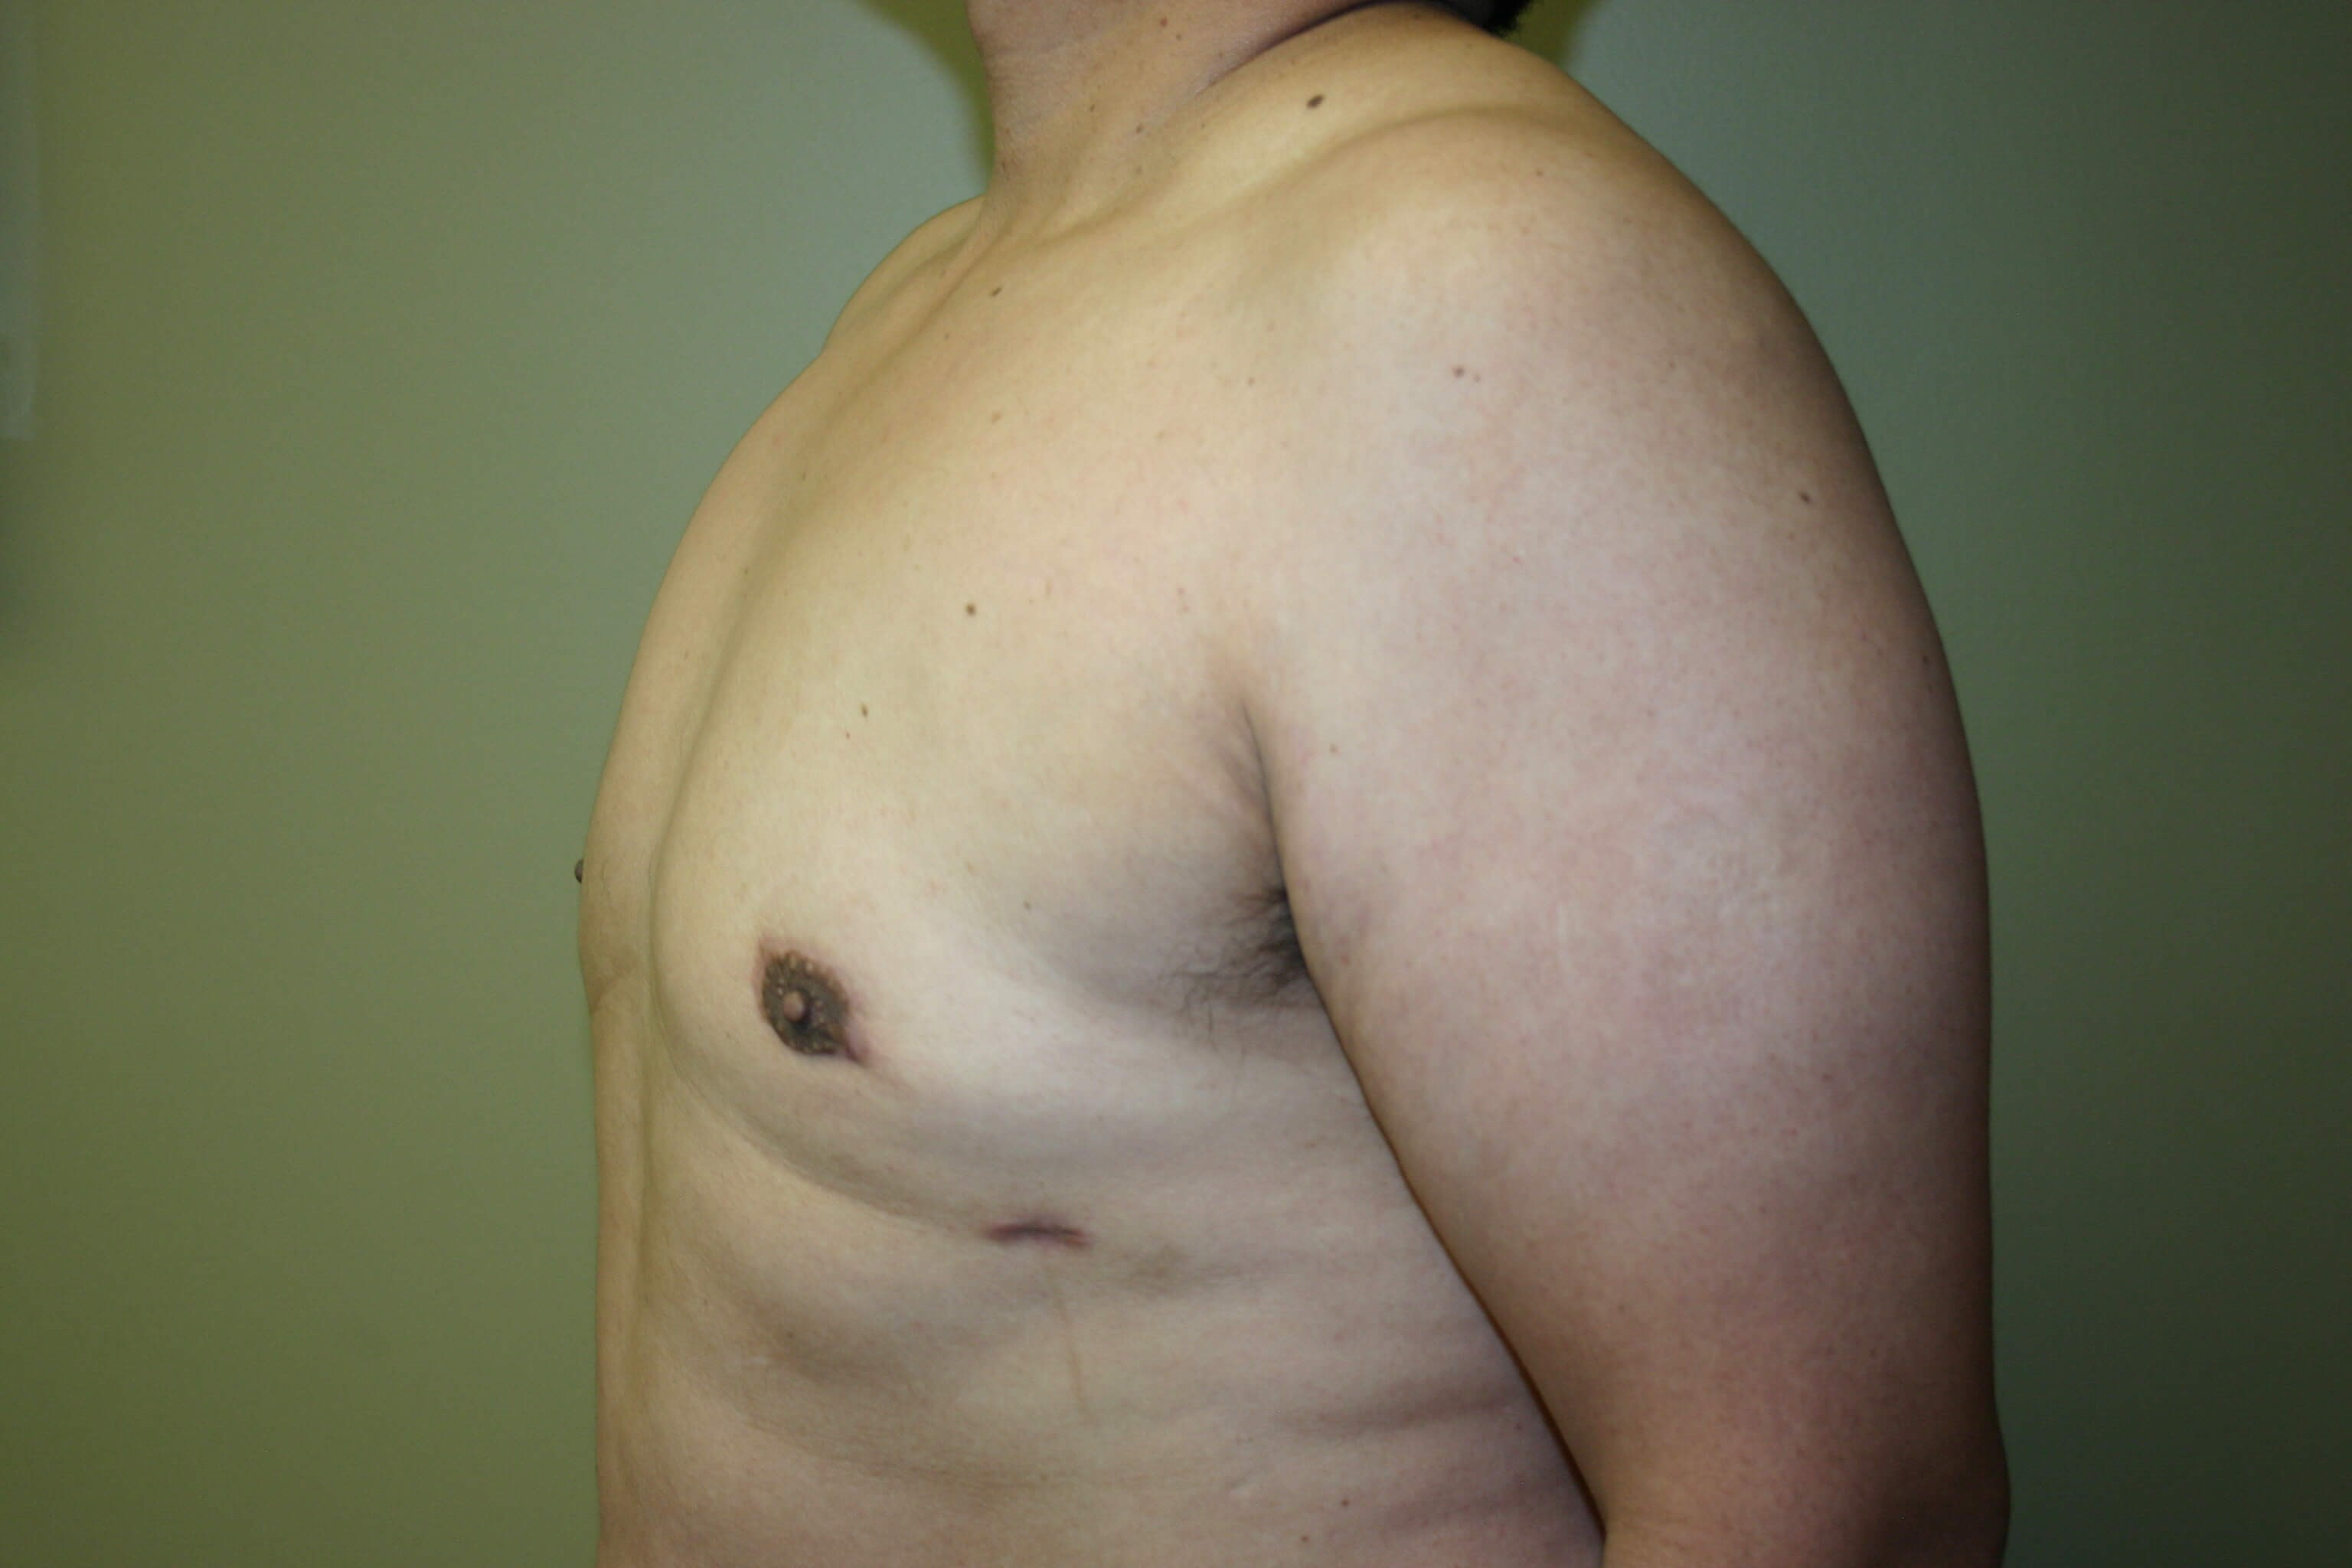 6 Month Post-op Male Reduction After